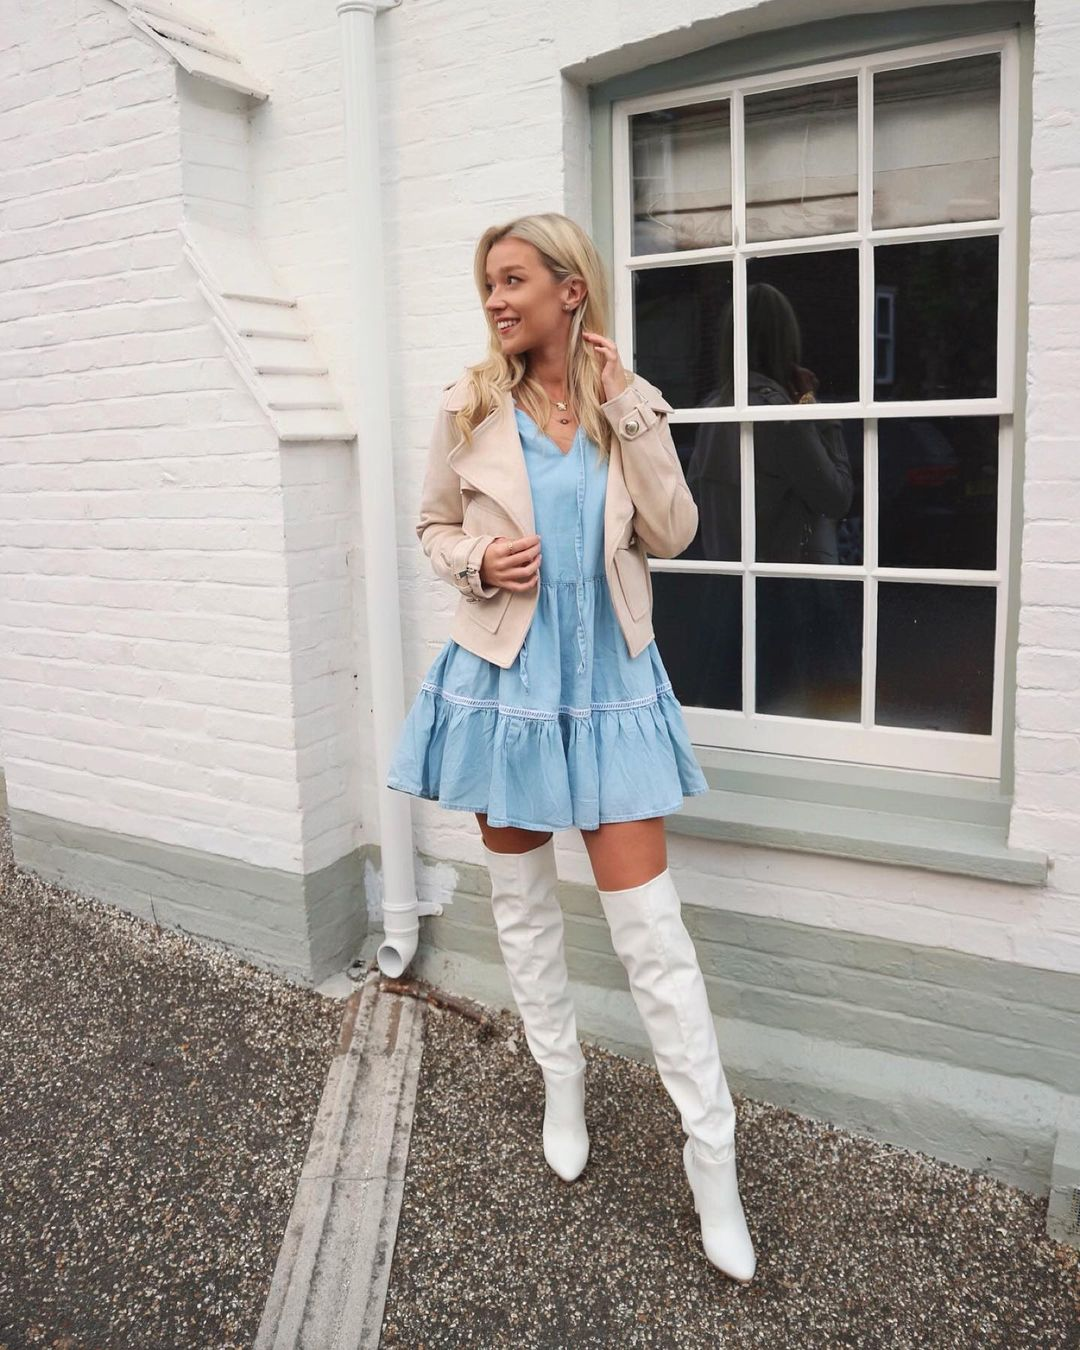 Flare dress and long white boots